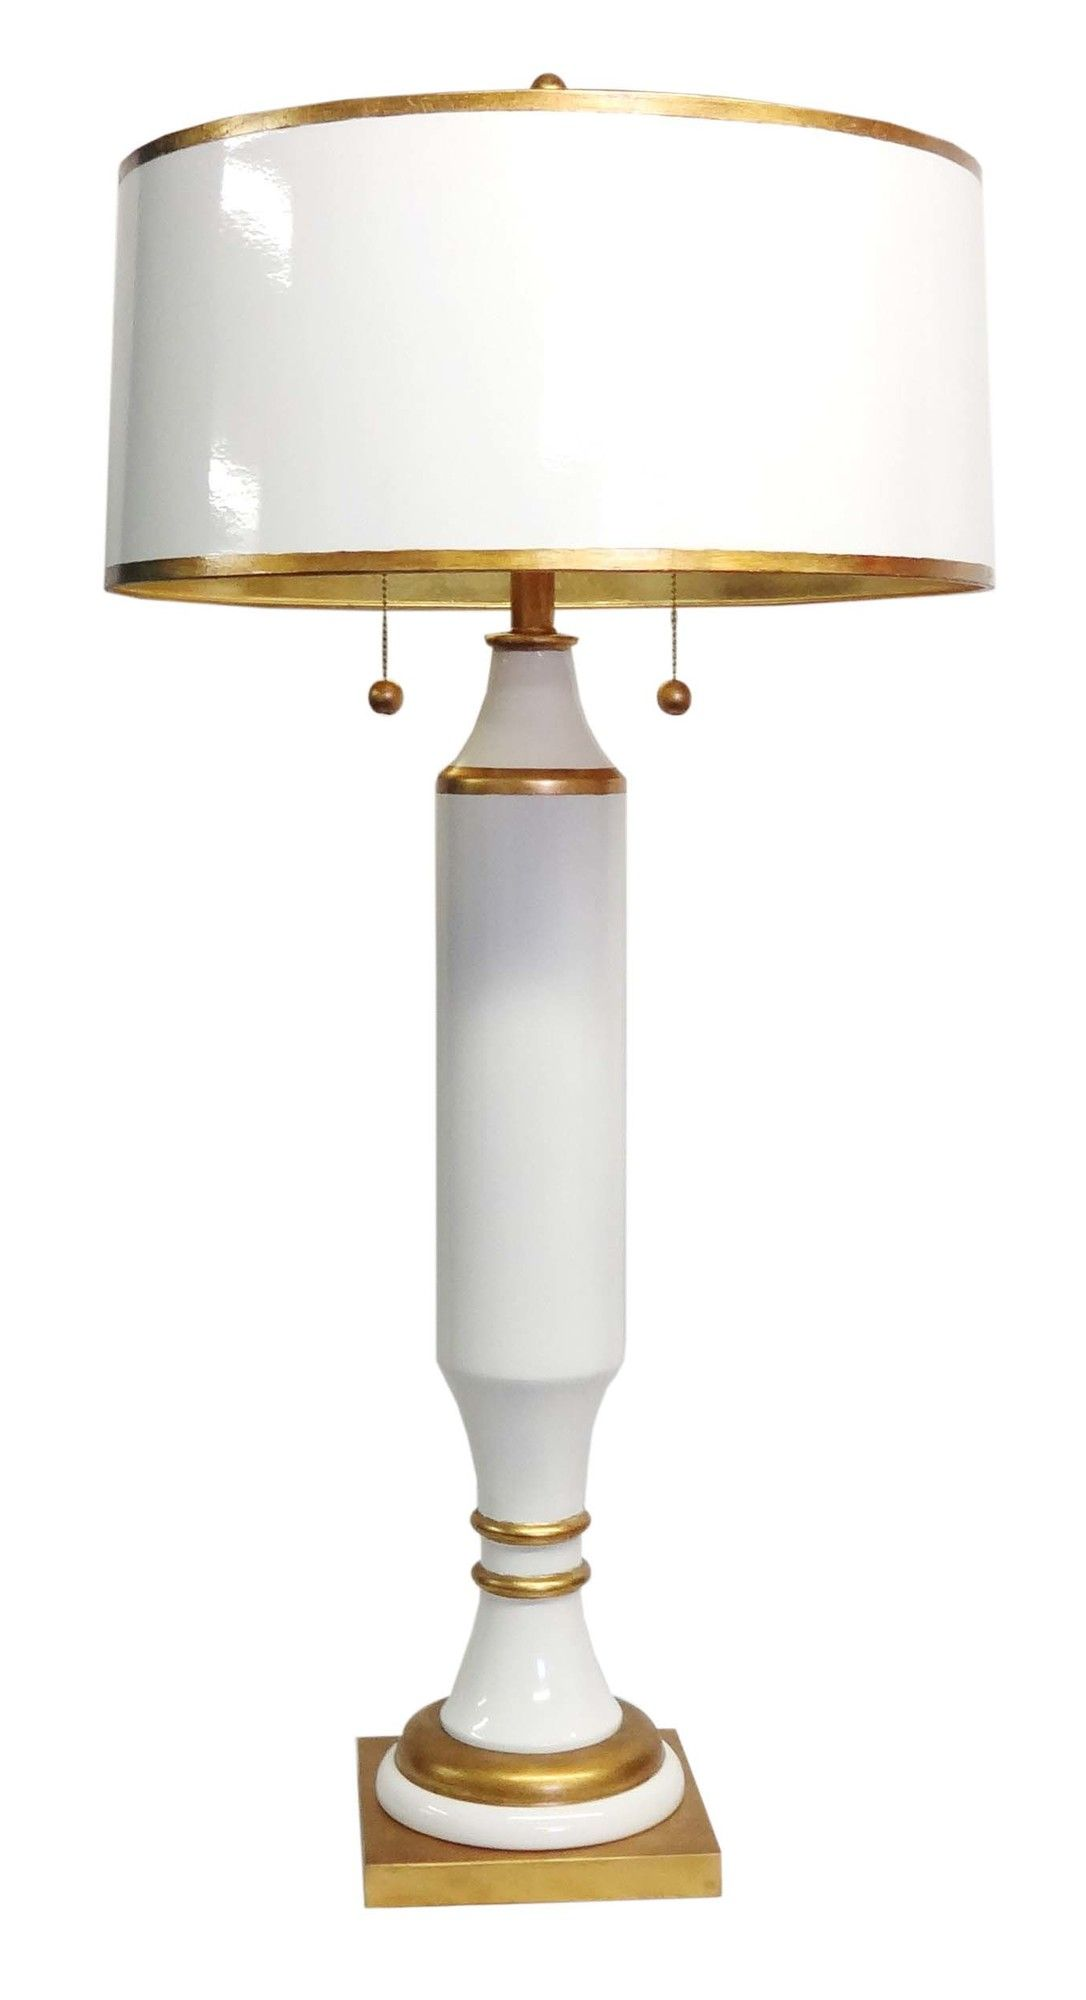 Pin On Tall Table Lamps